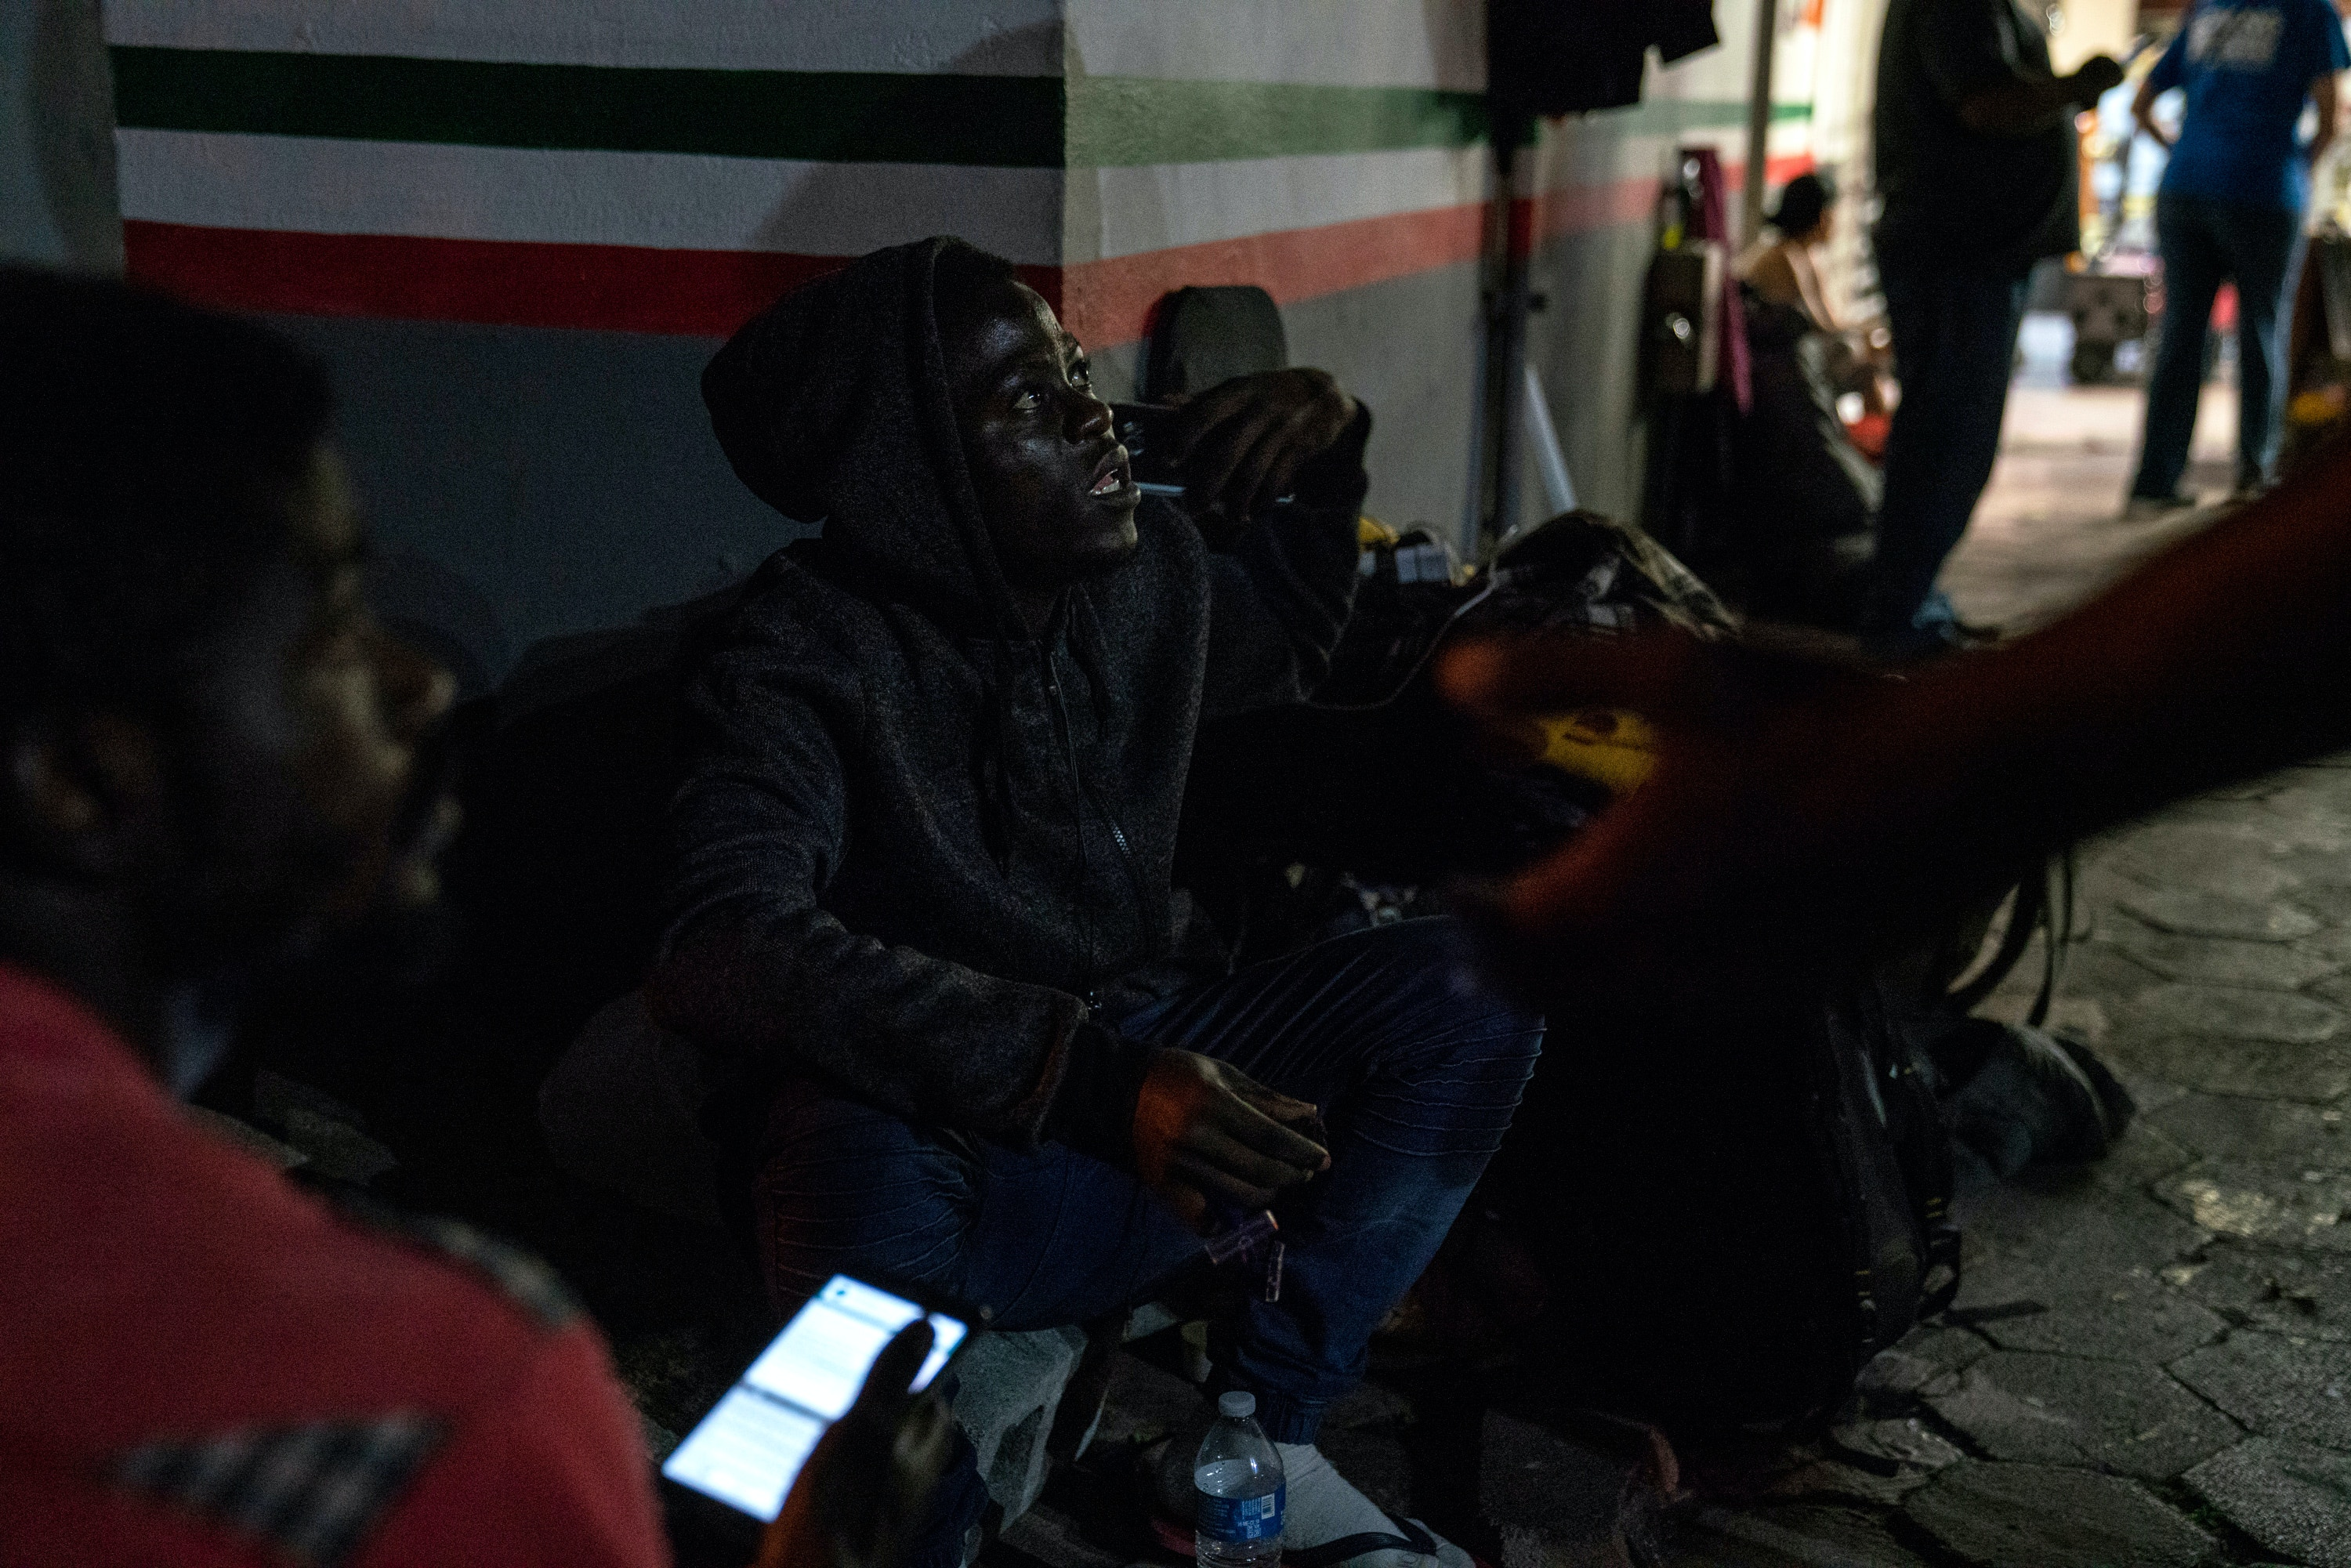 Ngomeioh, from Cameroon, waits to seek asylum in the U.S. near the Gateway International Bridge in Matamoros, Tamaulipas on Nov. 5, 2018. Photo: Verónica G. Cárdenas for The Intercept